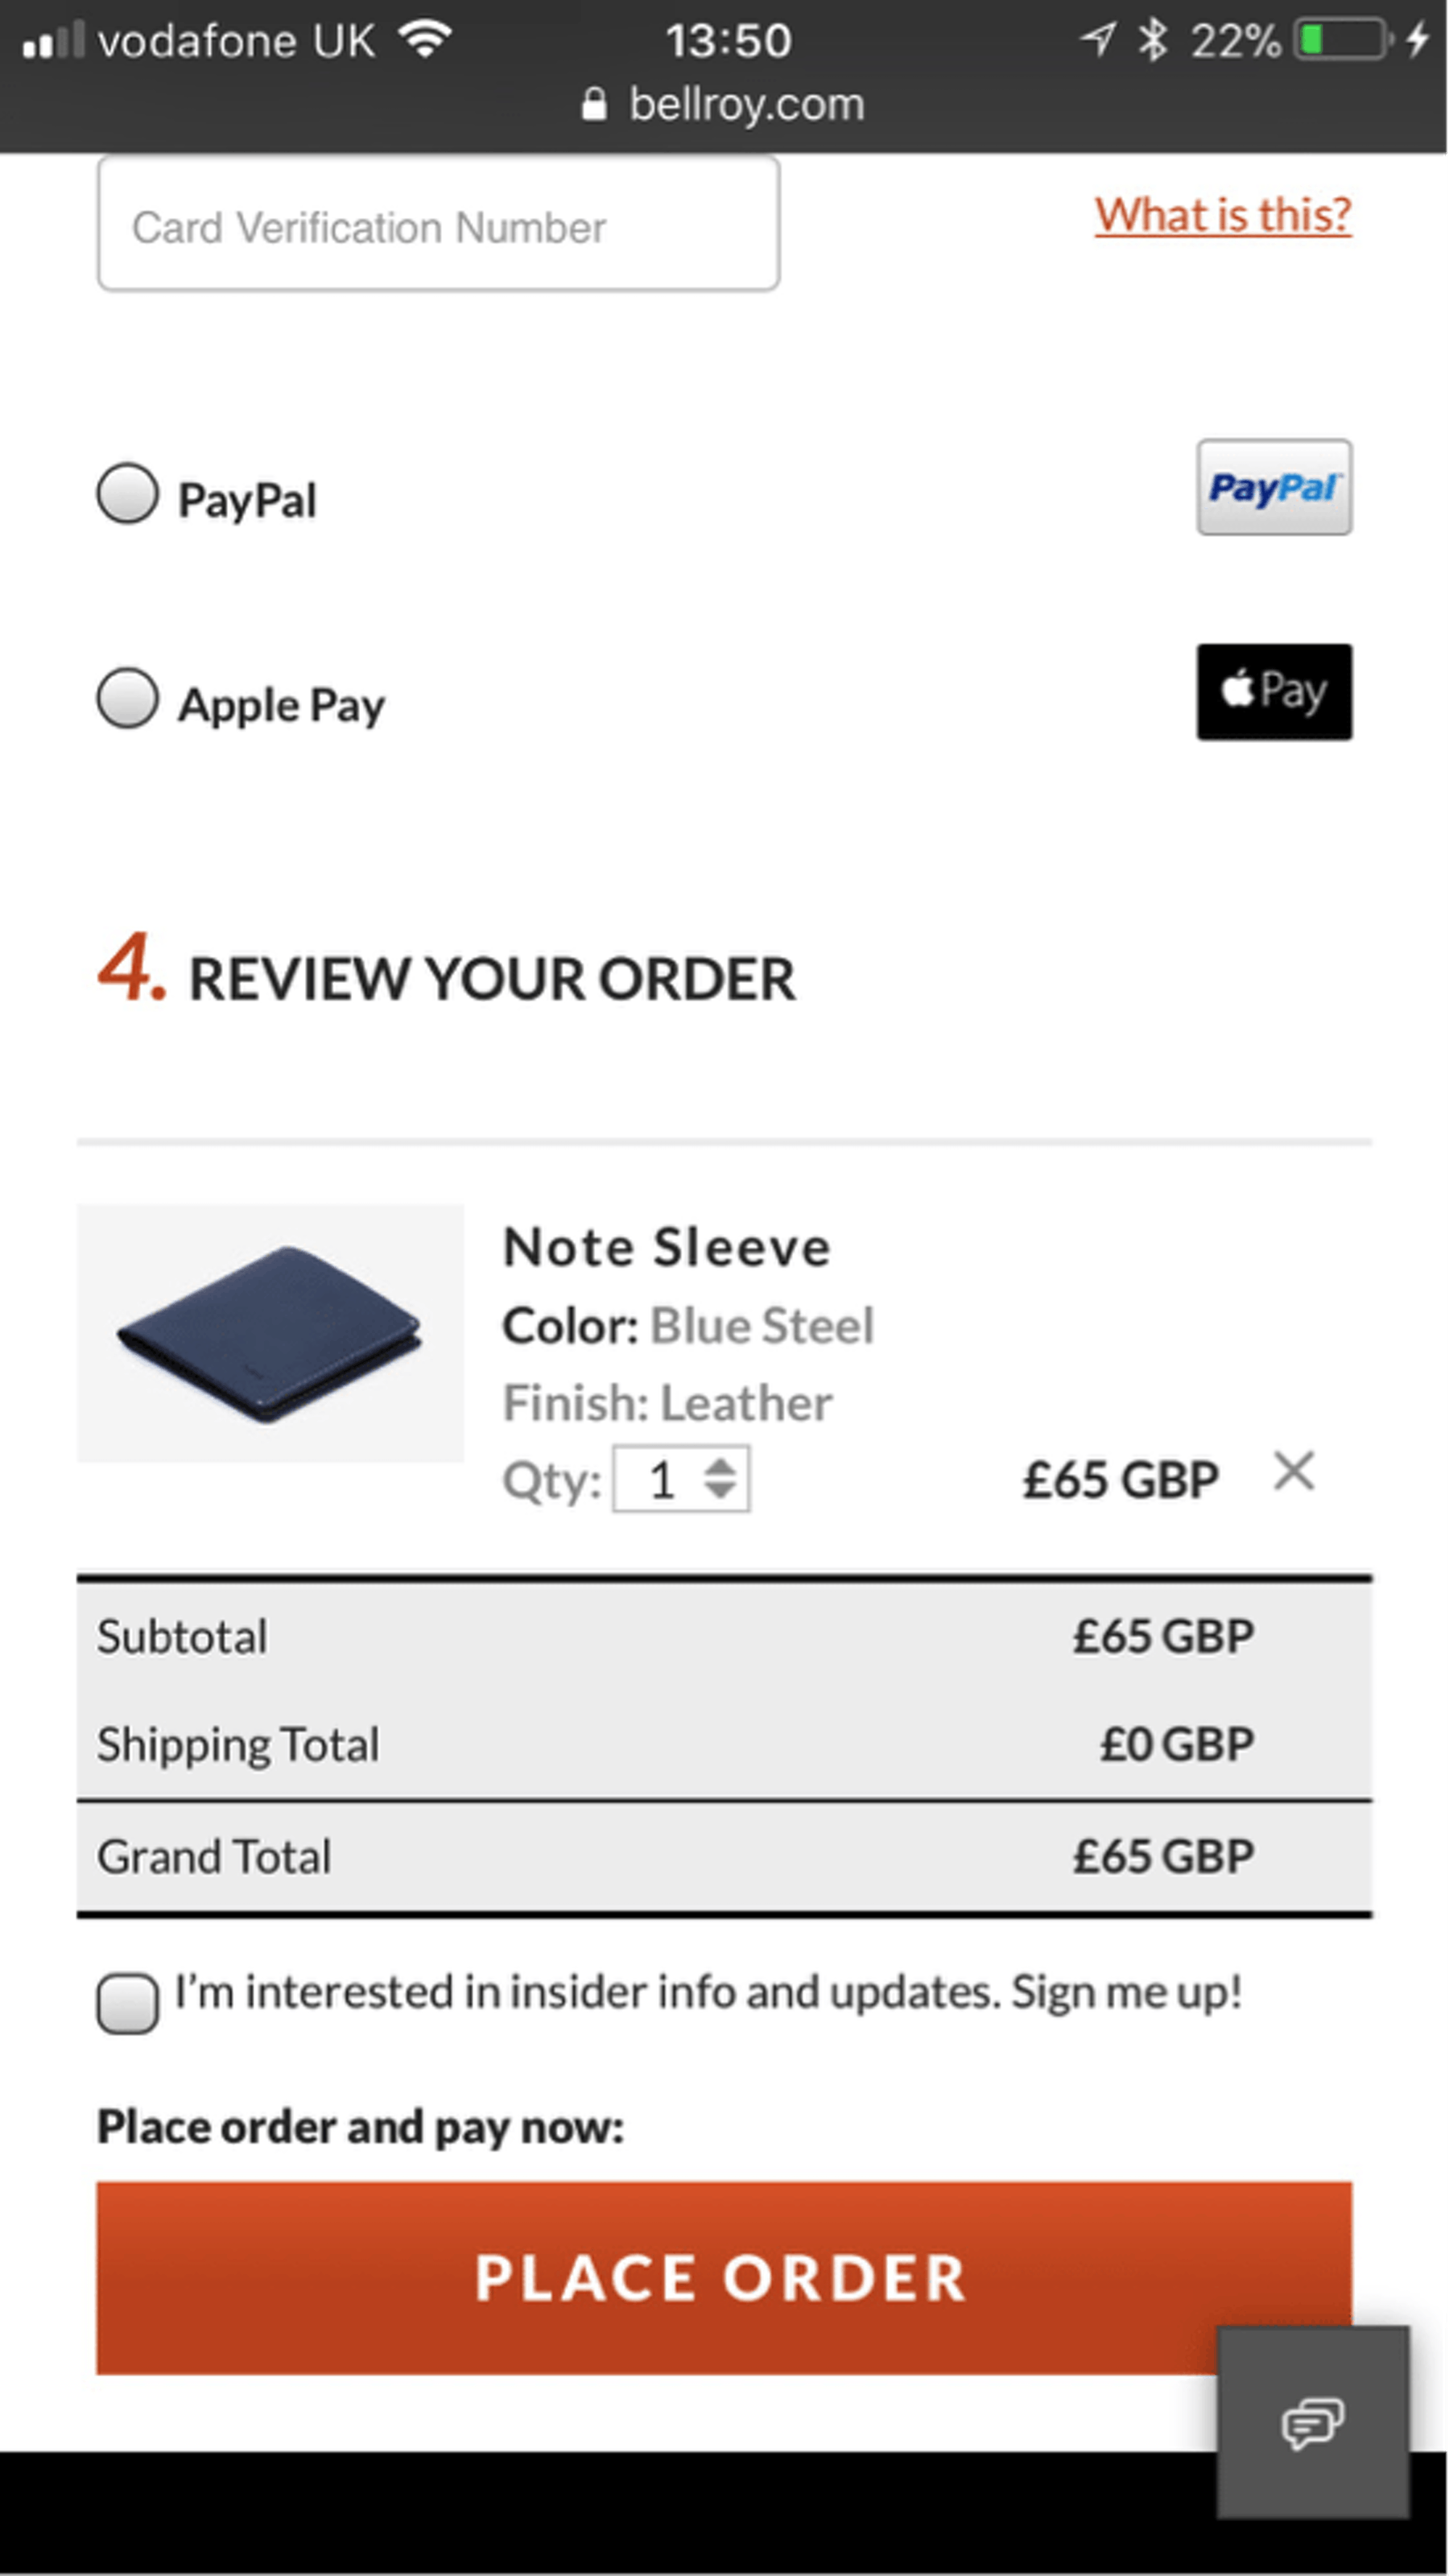 Bellroy mobile payment page